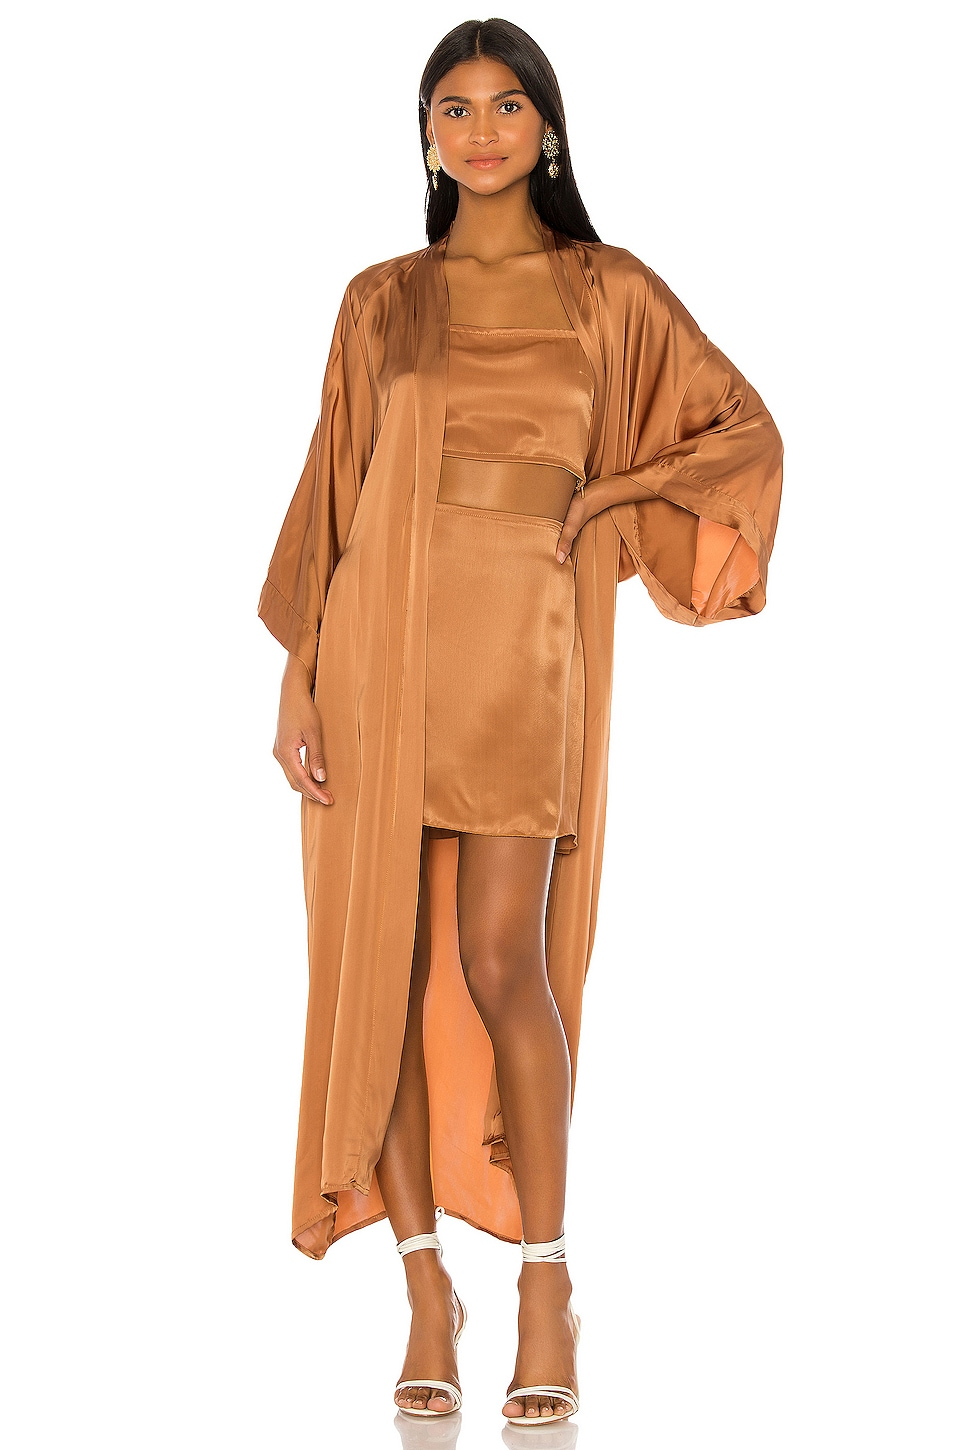 Indah Luna Robe with Sash in Honey